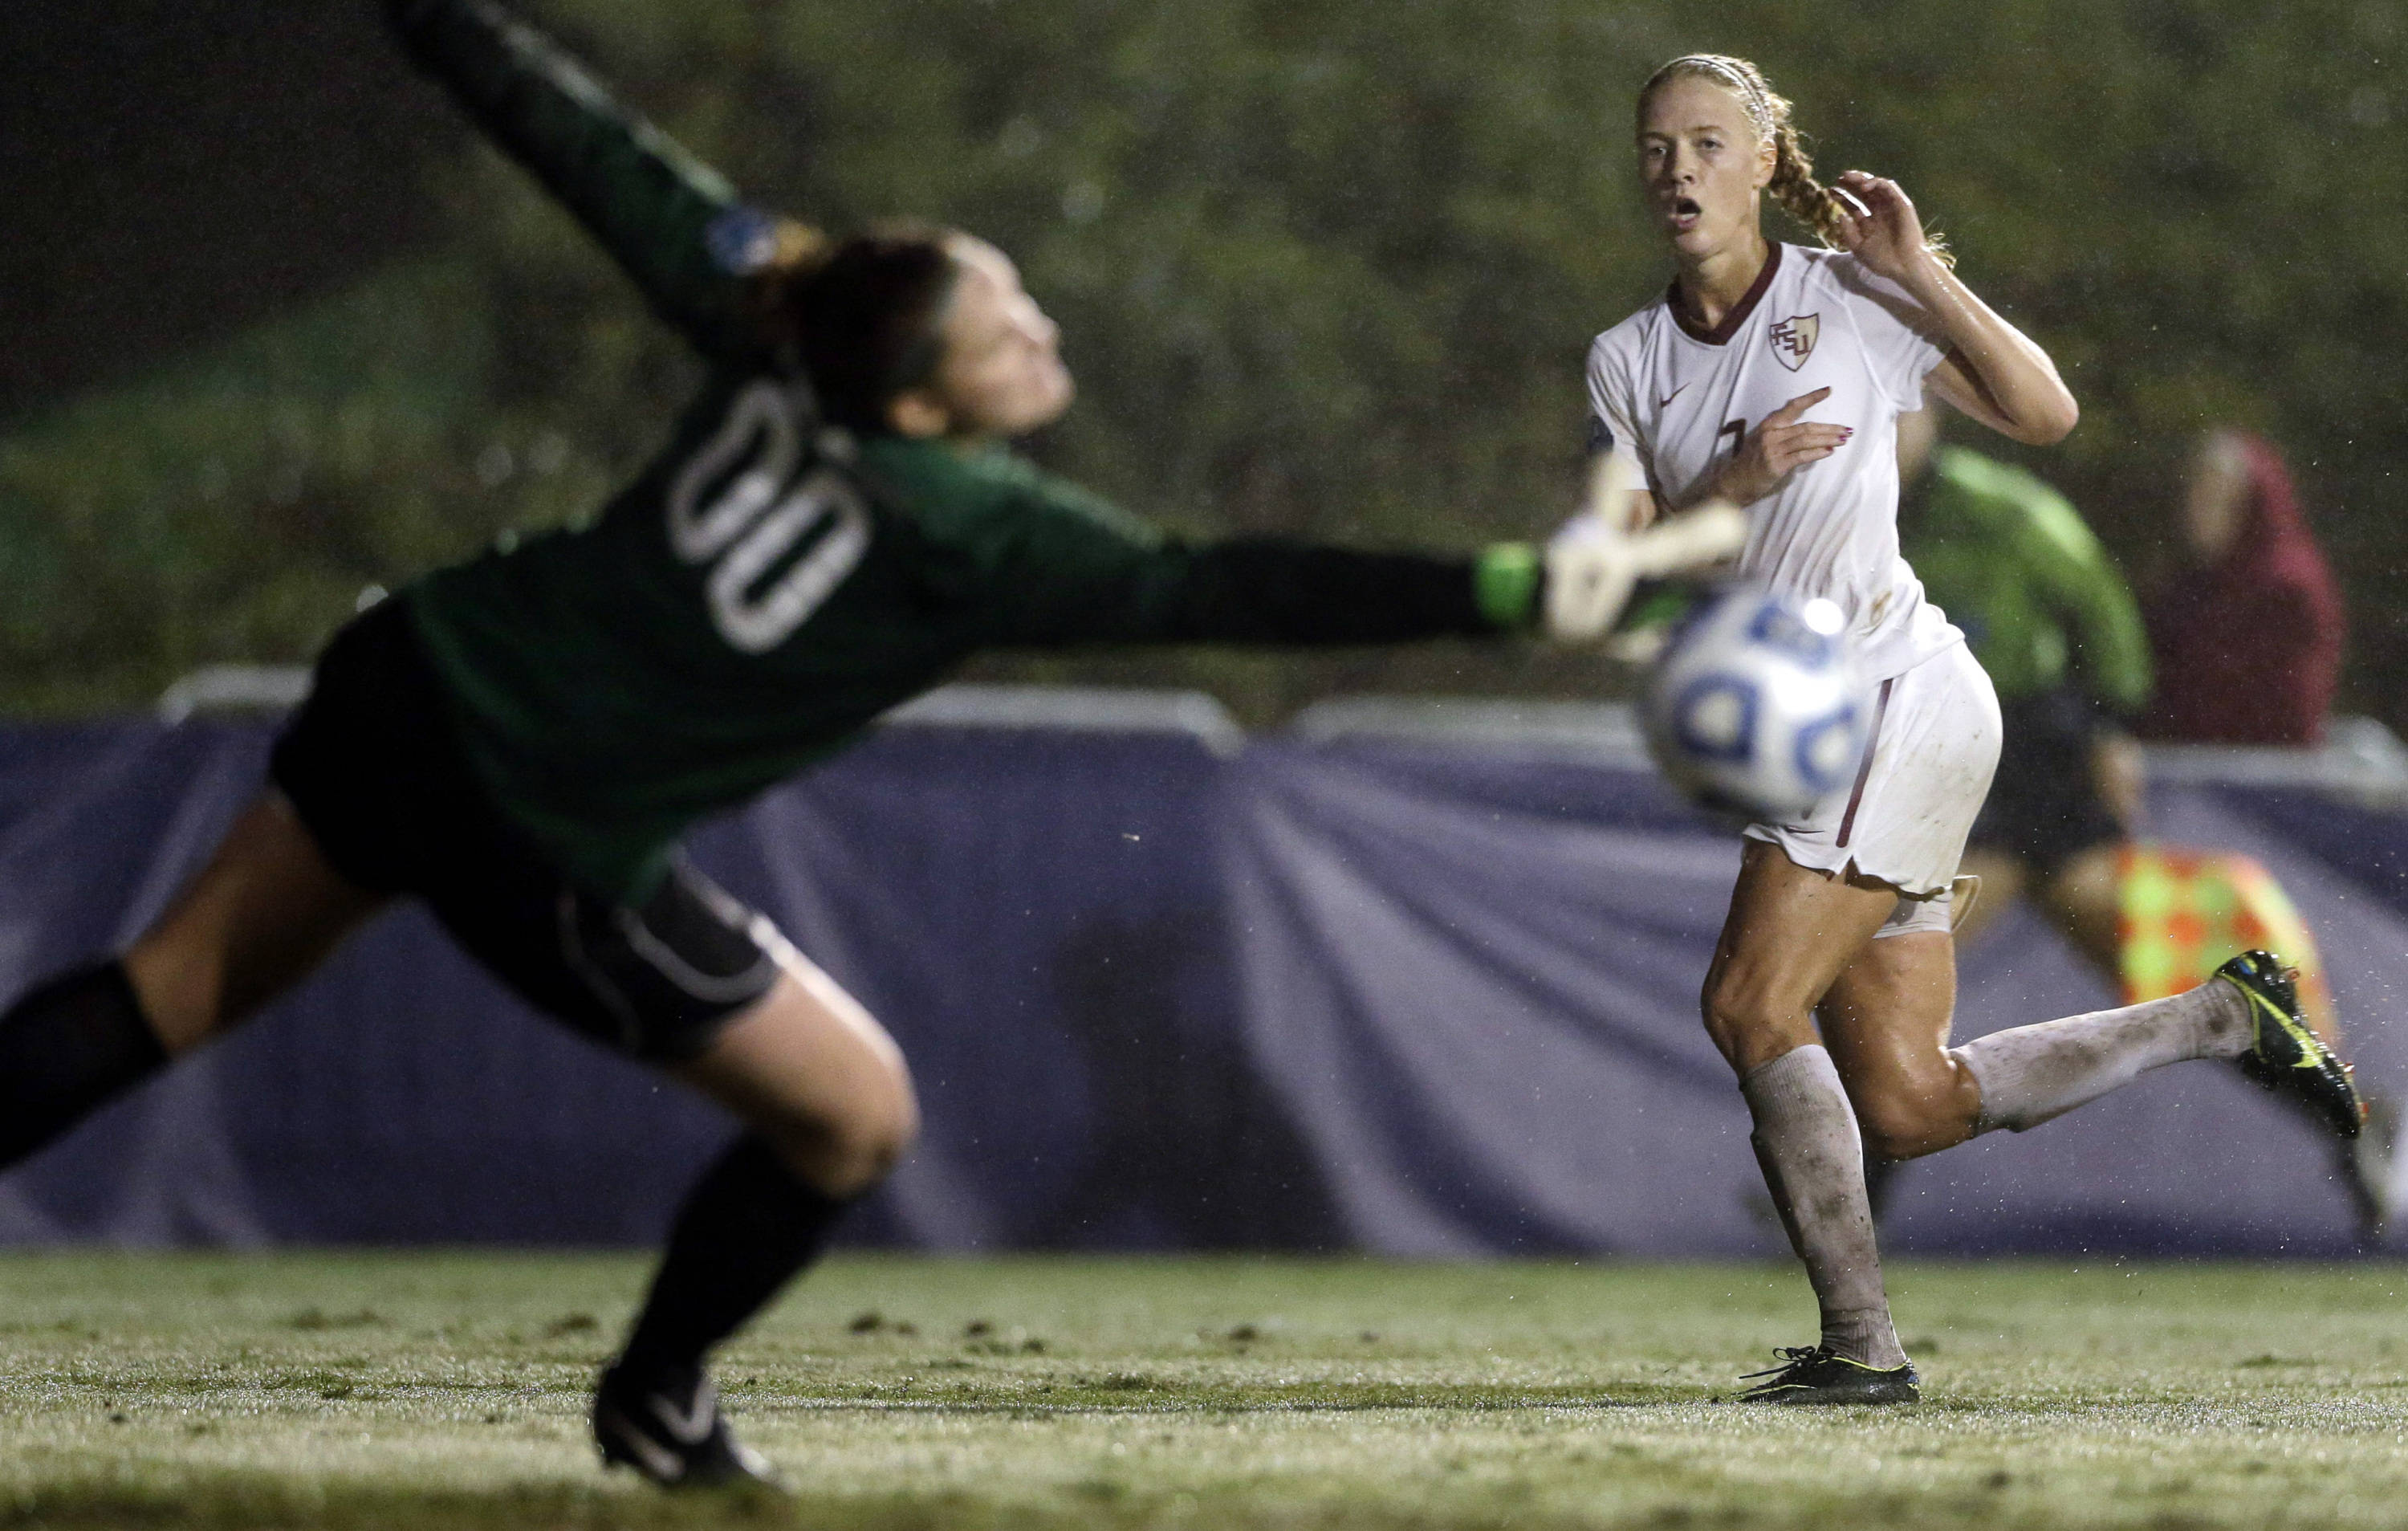 Dagny Brynjarsdottir watches her shot go wide of Penn State goalkeeper Erin McNulty during the second half. (AP Photo/Gregory Bull)